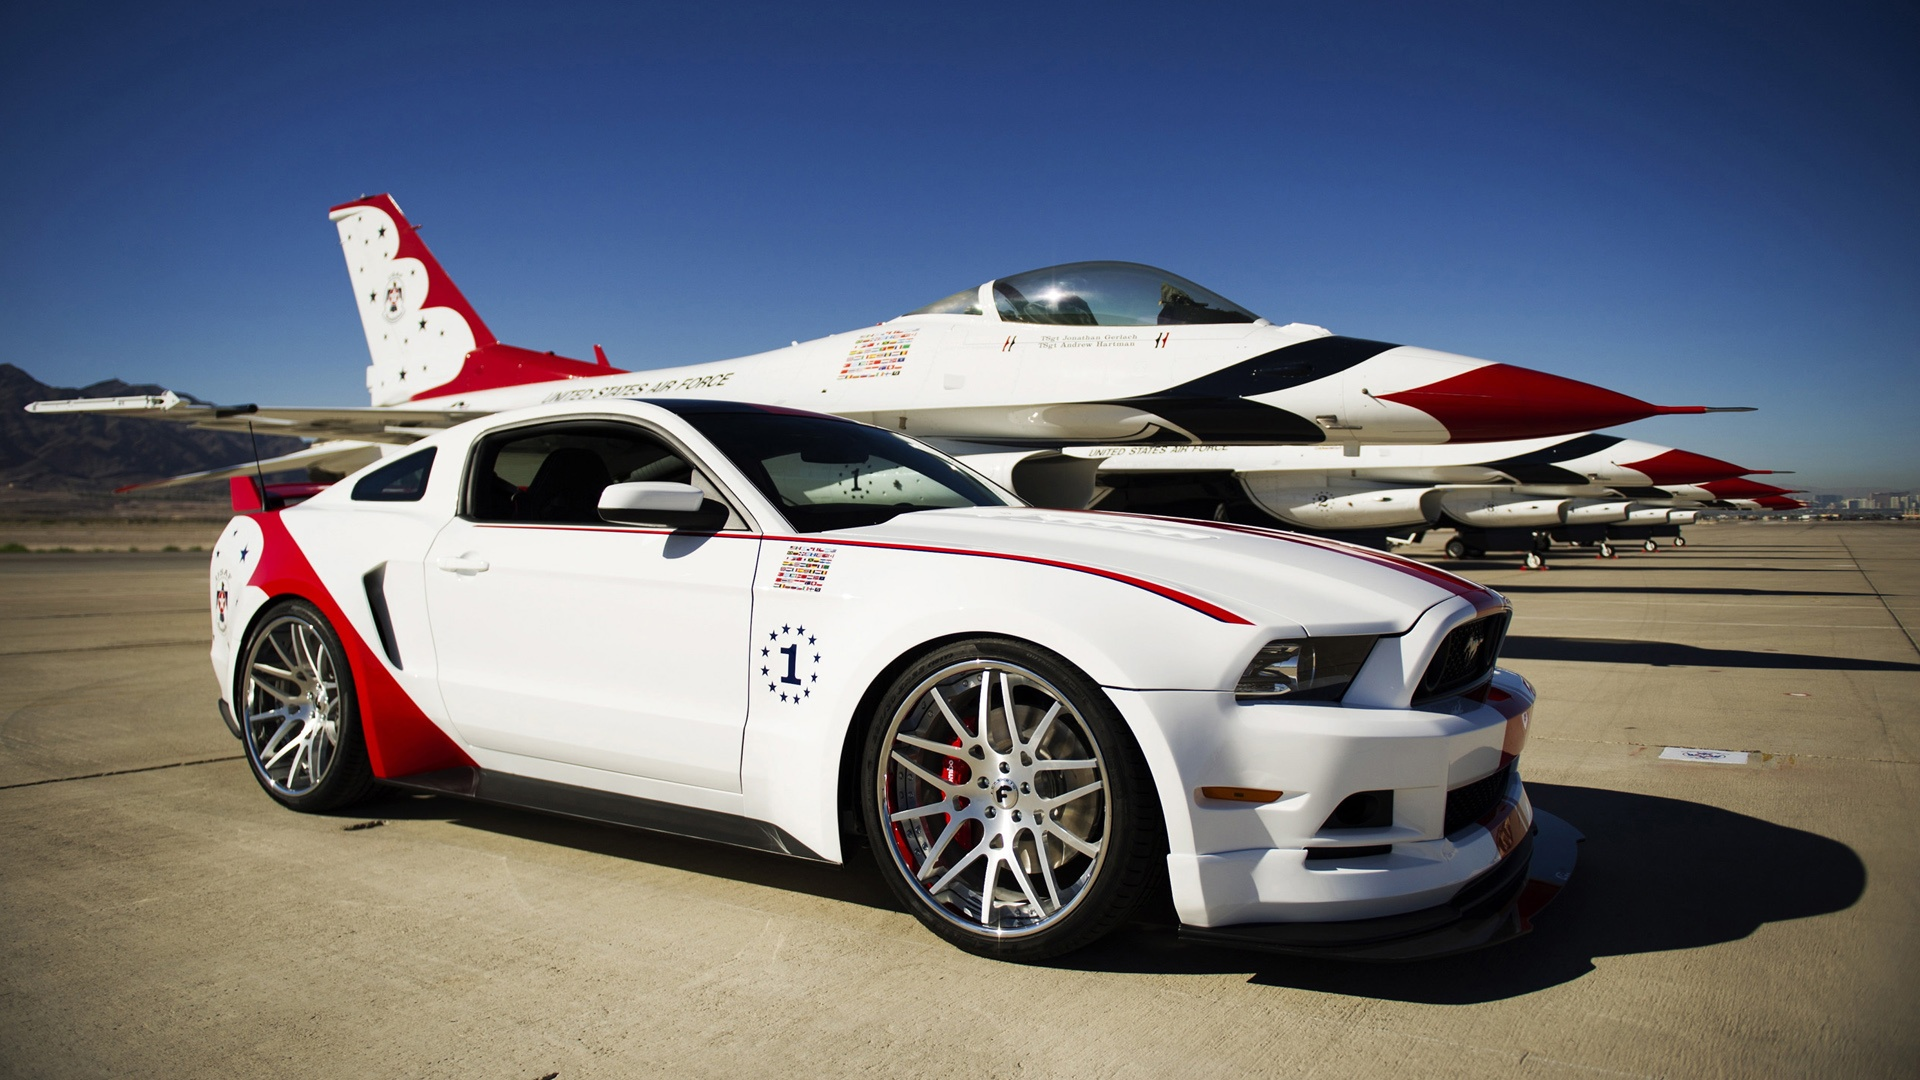 2014 Ford Mustang GT US Air Force Thunderbirds Edition 1920x1080 1920x1080